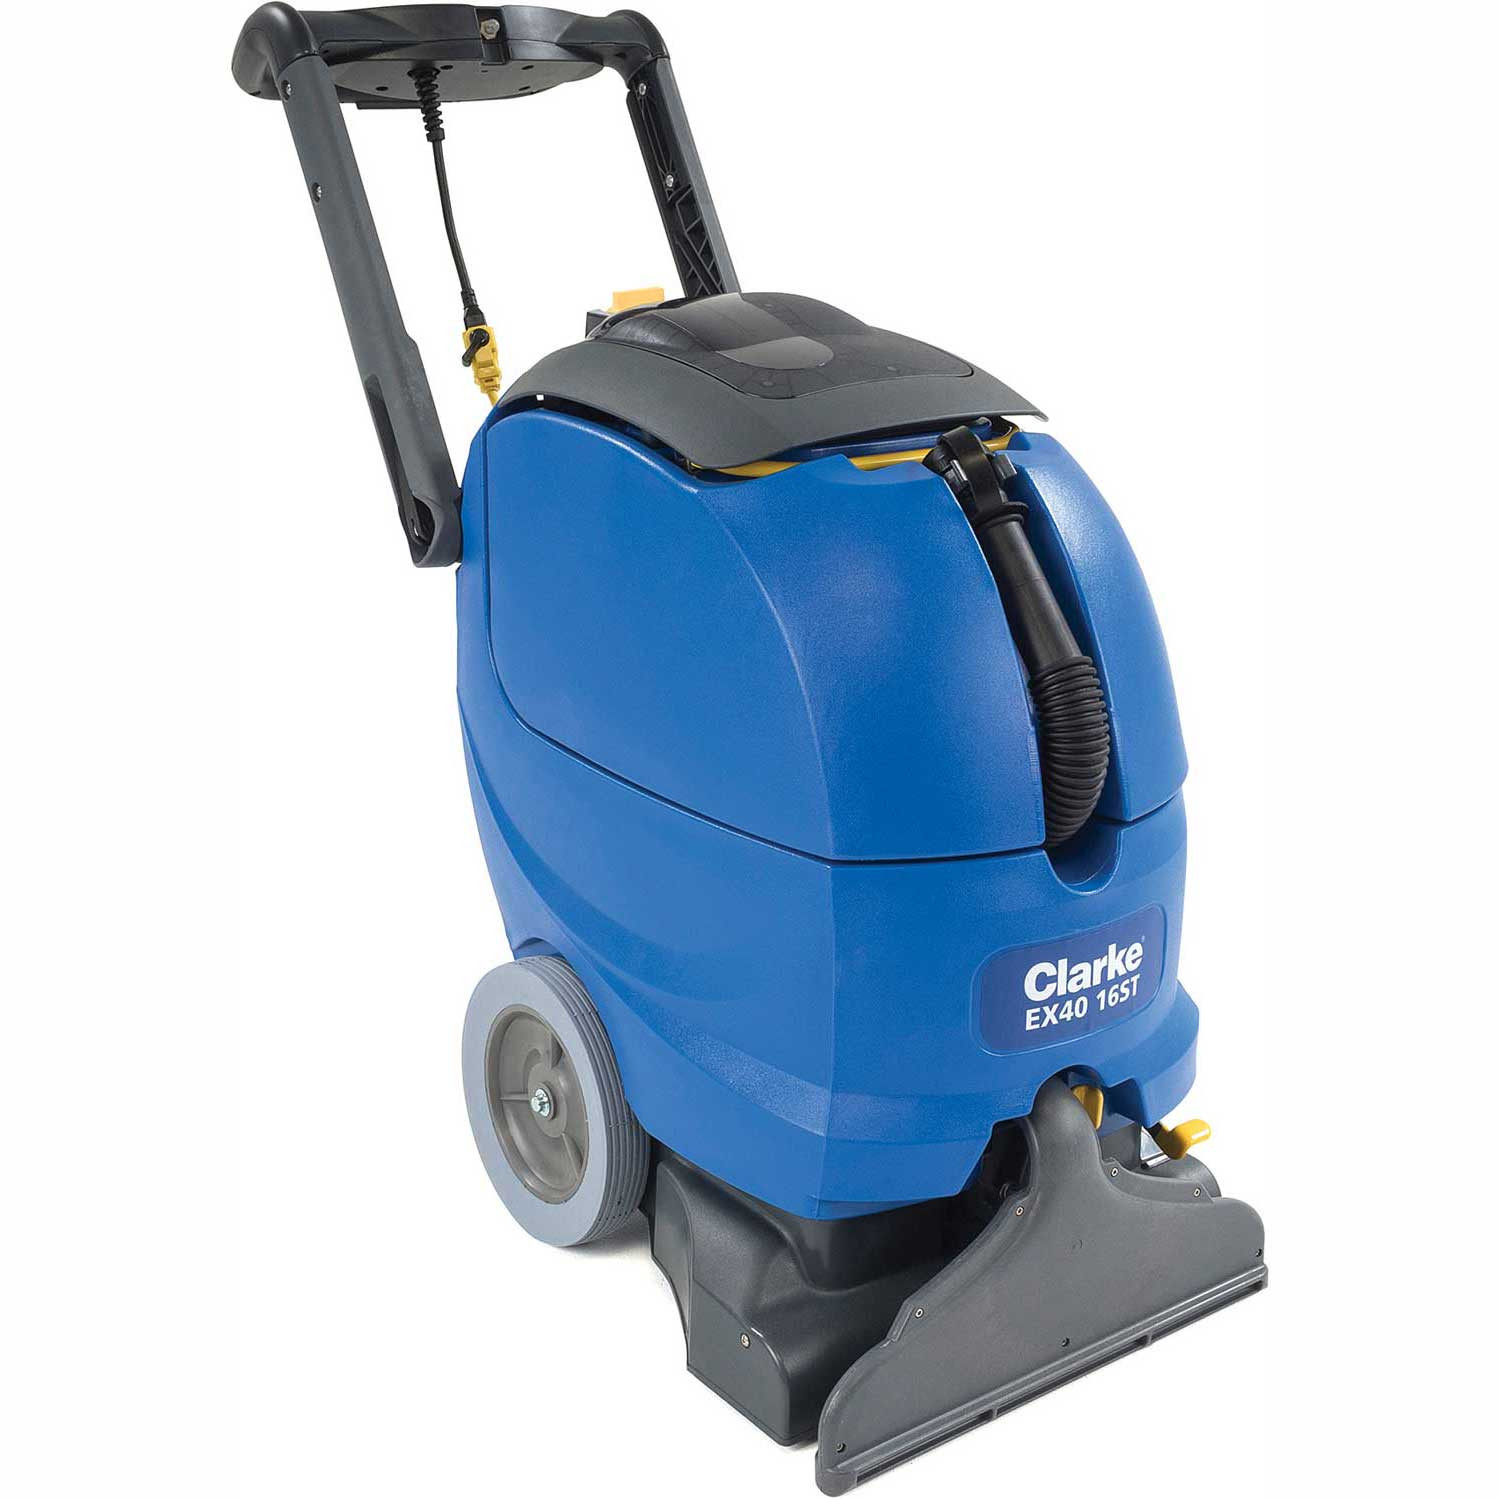 Clarke EX40 16ST SelfContained Carpet Scrubbing